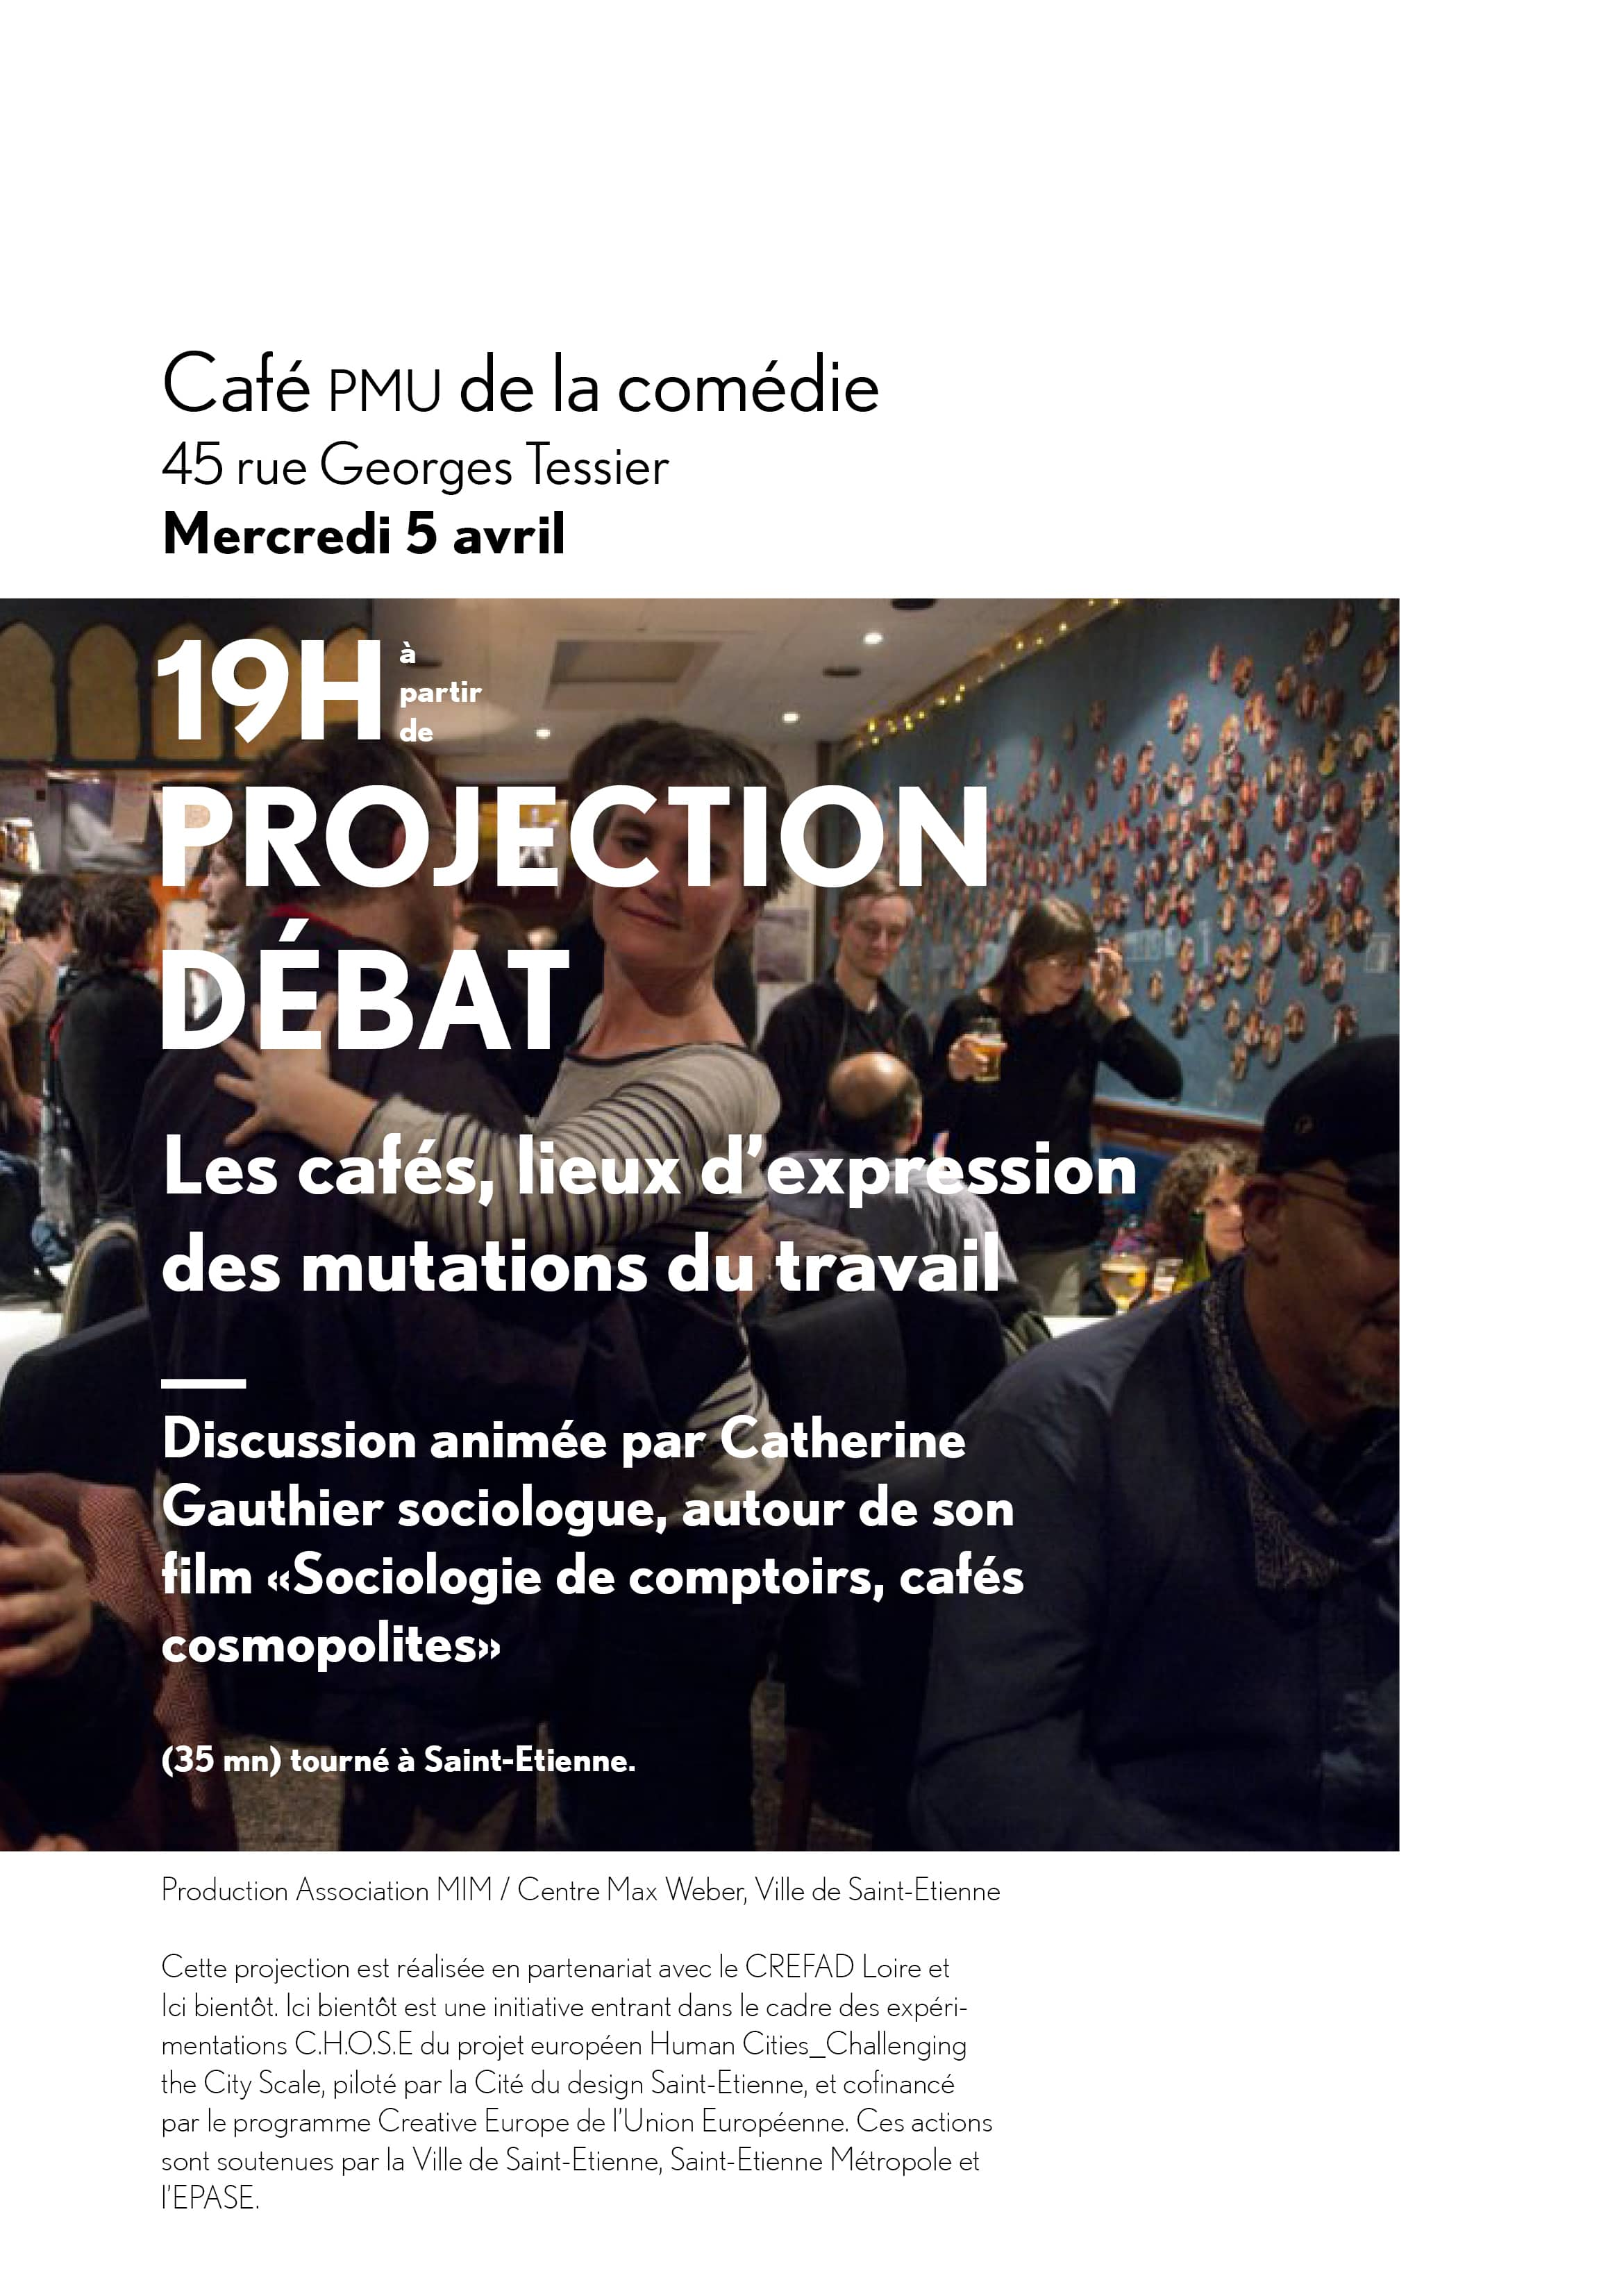 Film cafe de la comedie